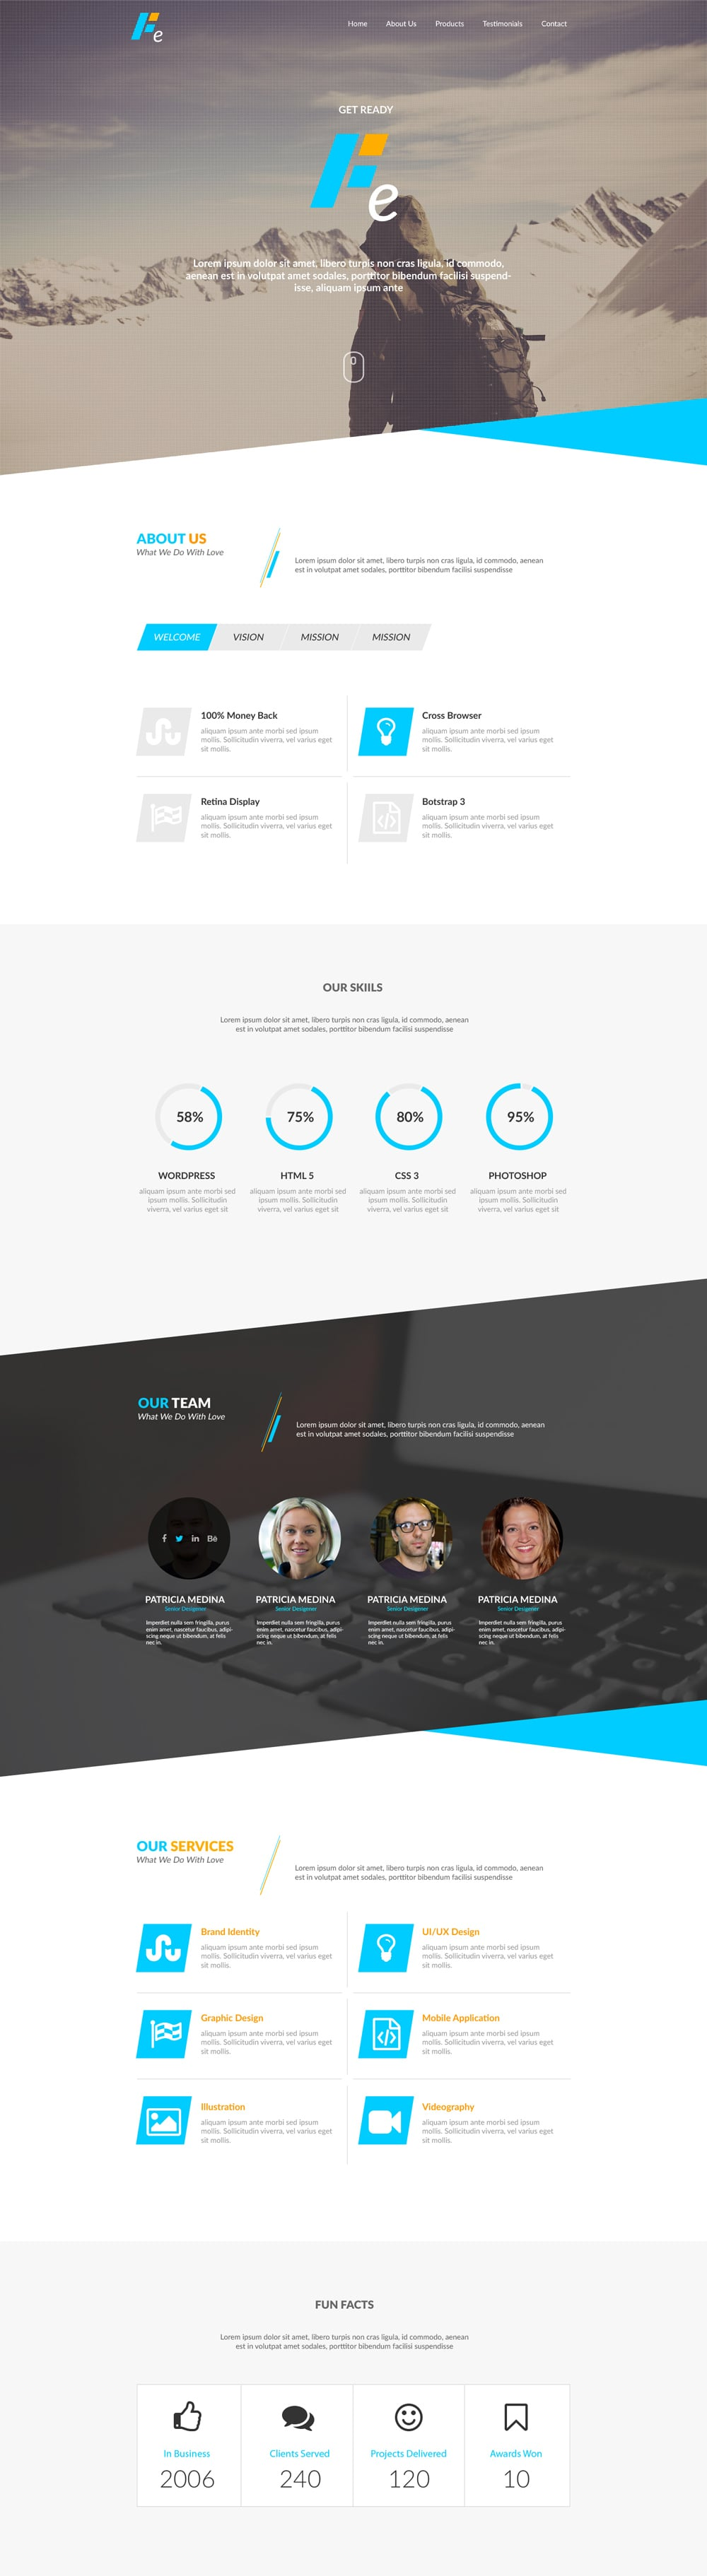 Fe - Free Responsive Webdesign Template PSD